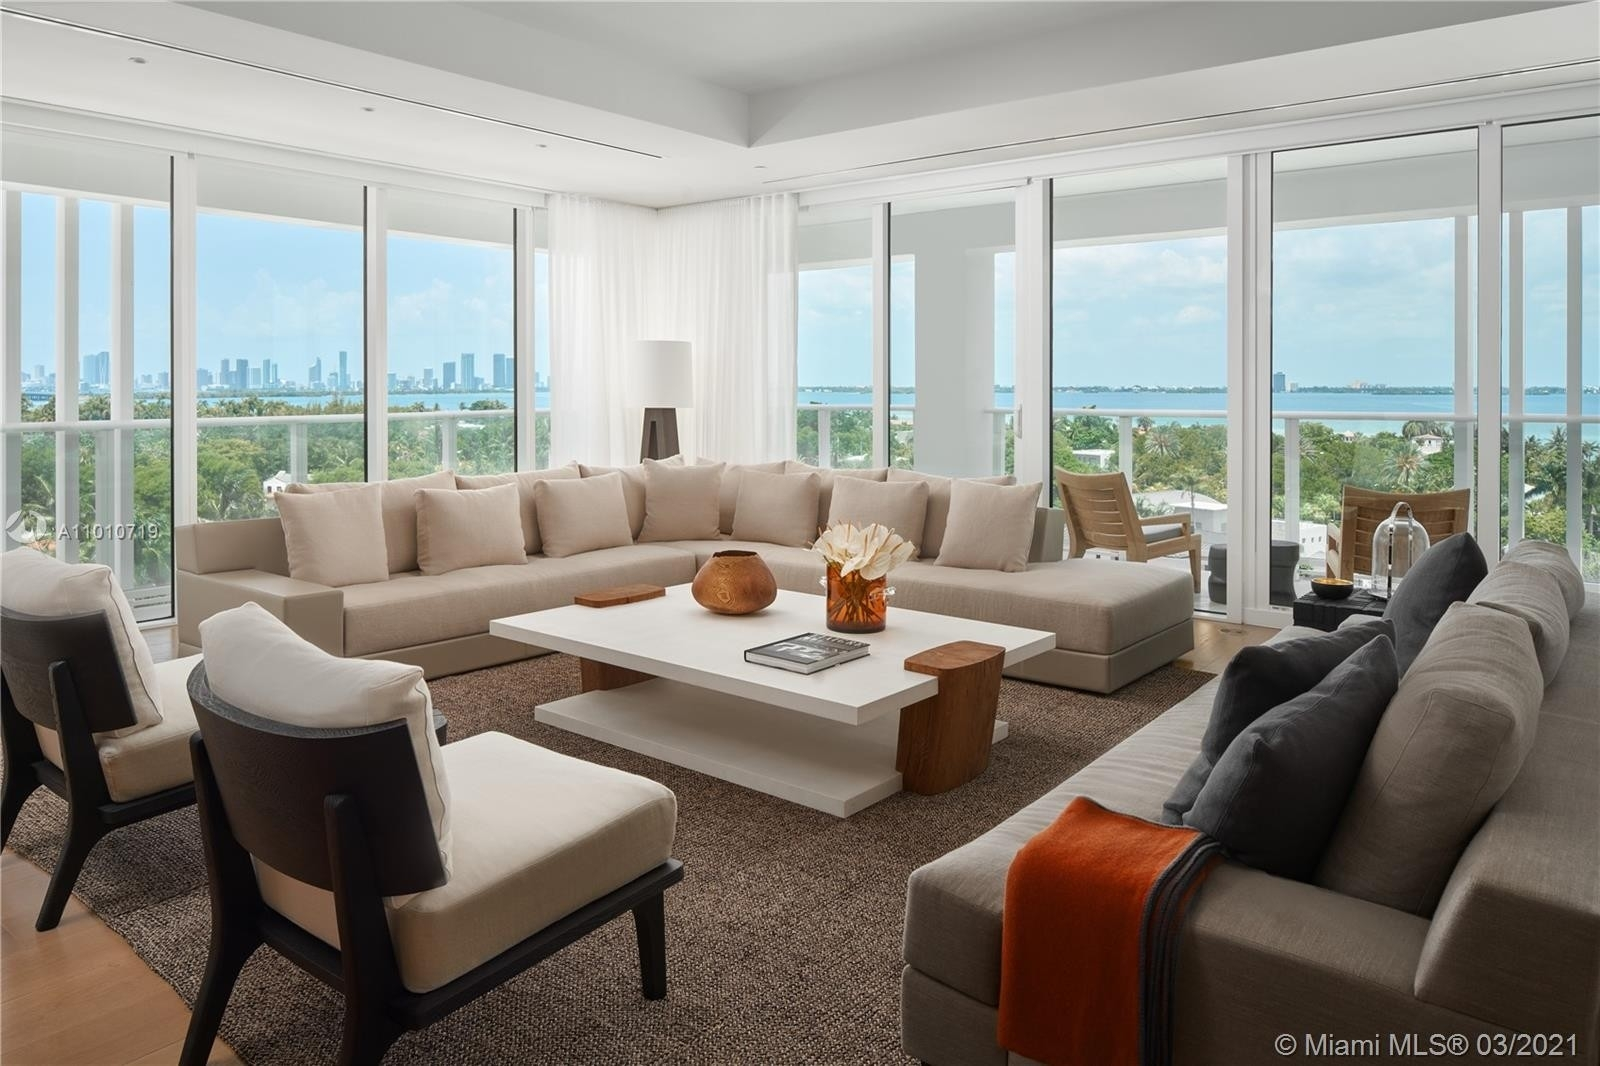 Condominium 在 4701 N Meridian Ave , LPH 20 Miami Beach